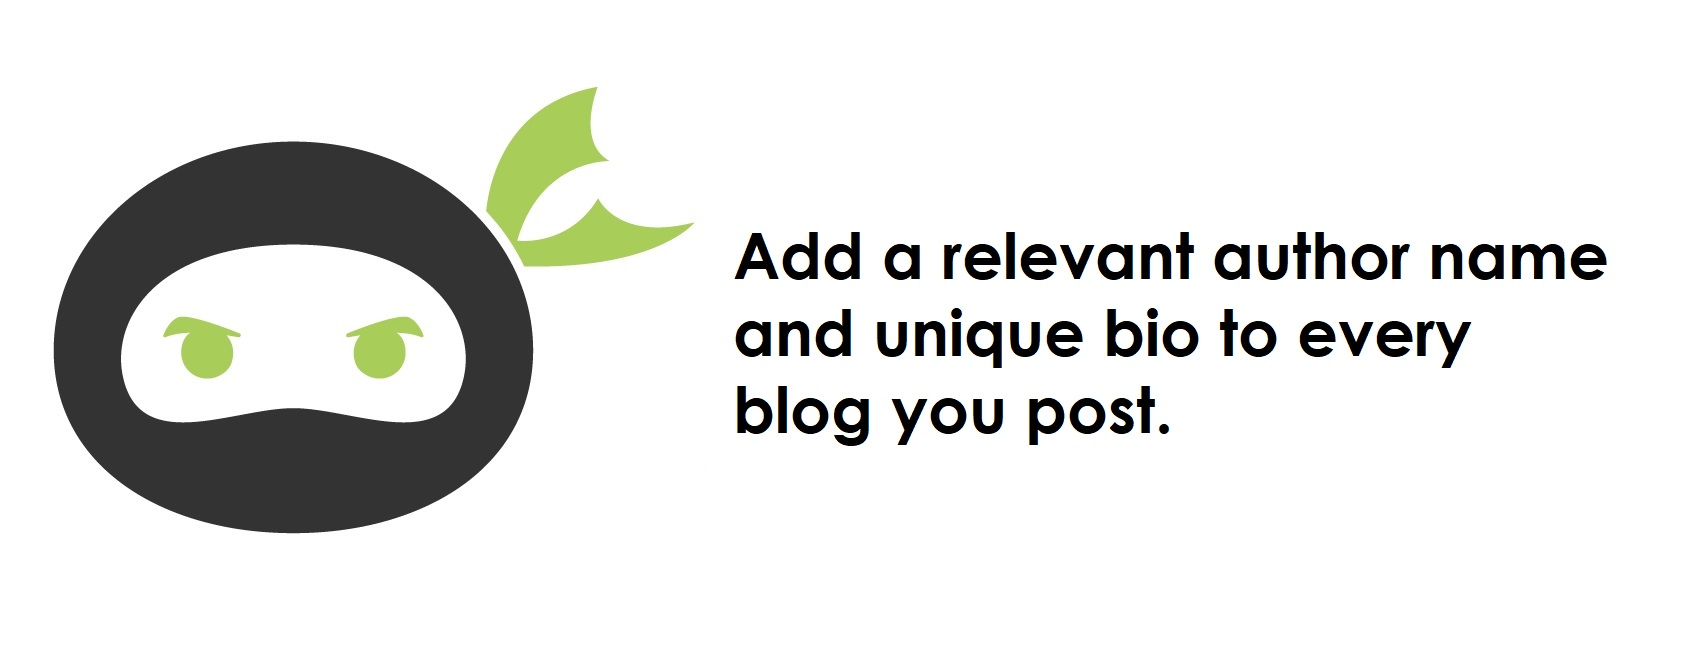 importance of adding a unique bio to each blog post